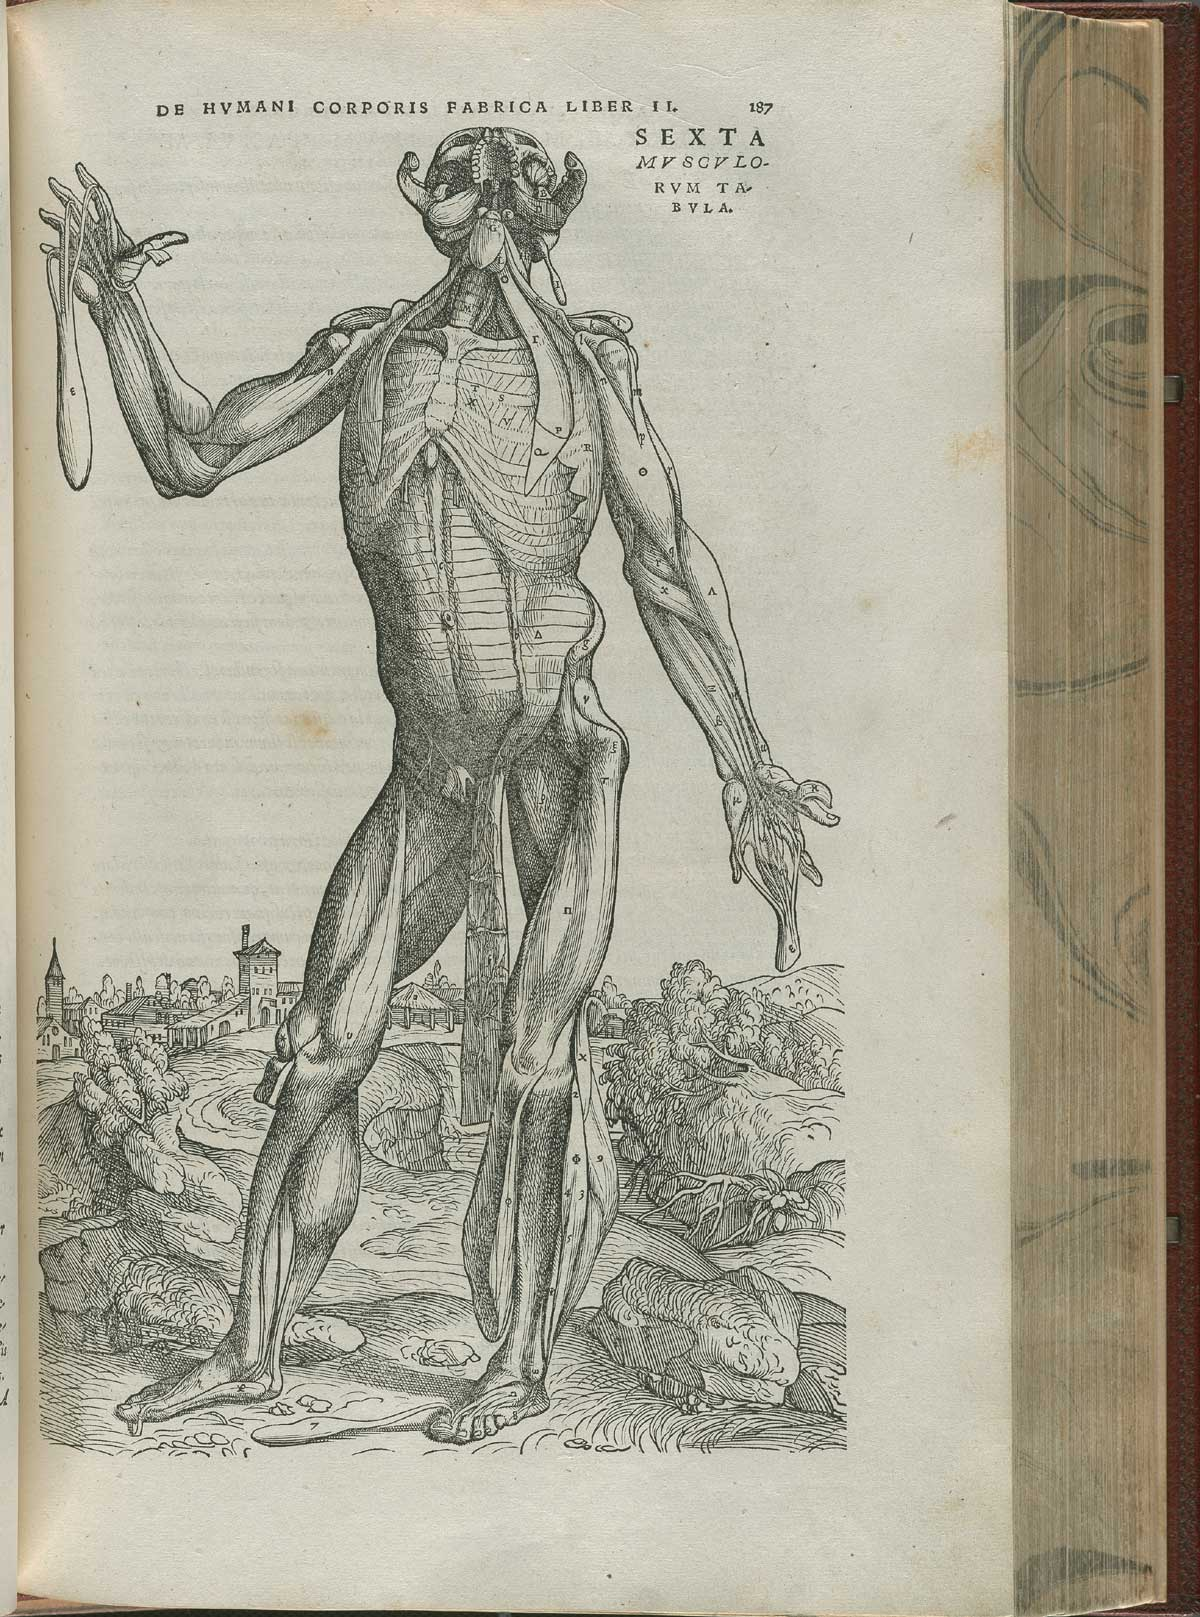 Historical Anatomies On The Web Andreas Vesalius Home Muscle Anatomy Diagram By And Burgers Page 187 Of De Corporis Humani Fabrica Libri Septem Featuring Illustrated